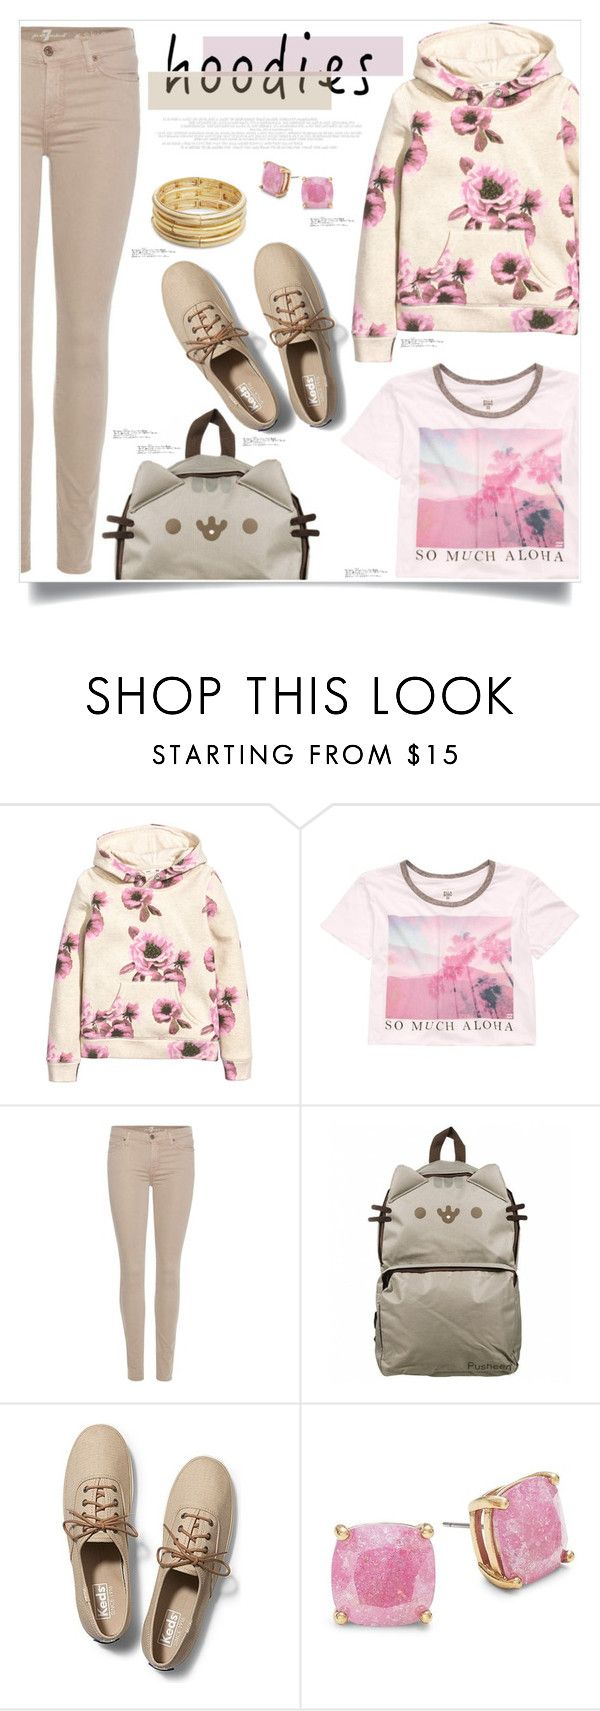 """Hoodies"" by captainsilly ❤ liked on Polyvore featuring H&M, Billabong, 7 For All Mankind, Pusheen, Keds, Kate Spade and Nanette Lepore"